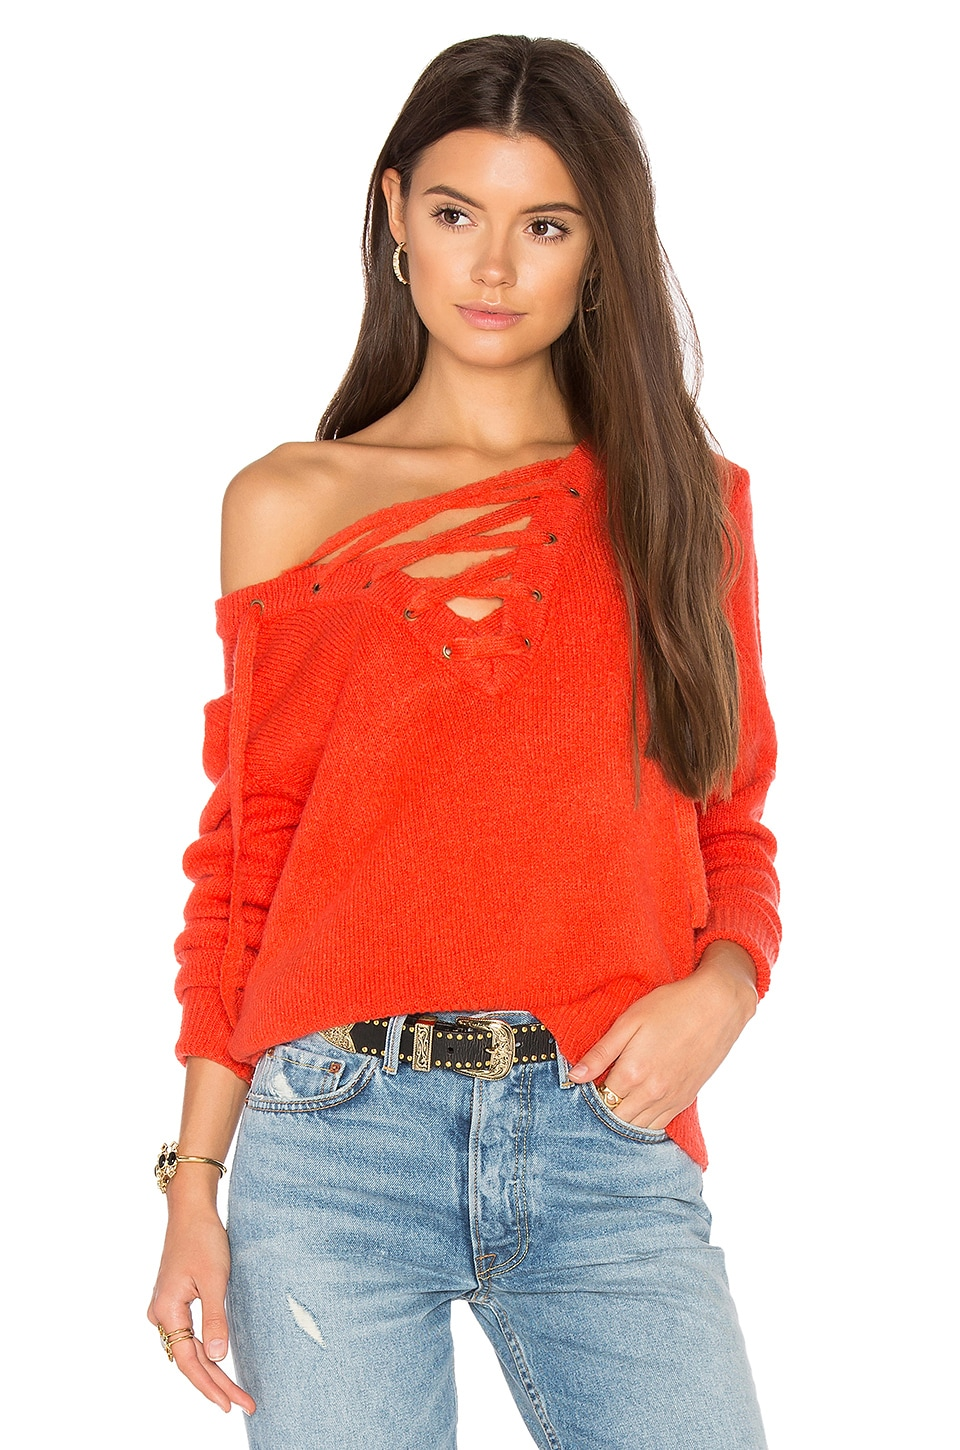 Bardot Criss Cross Sweater in Pimento